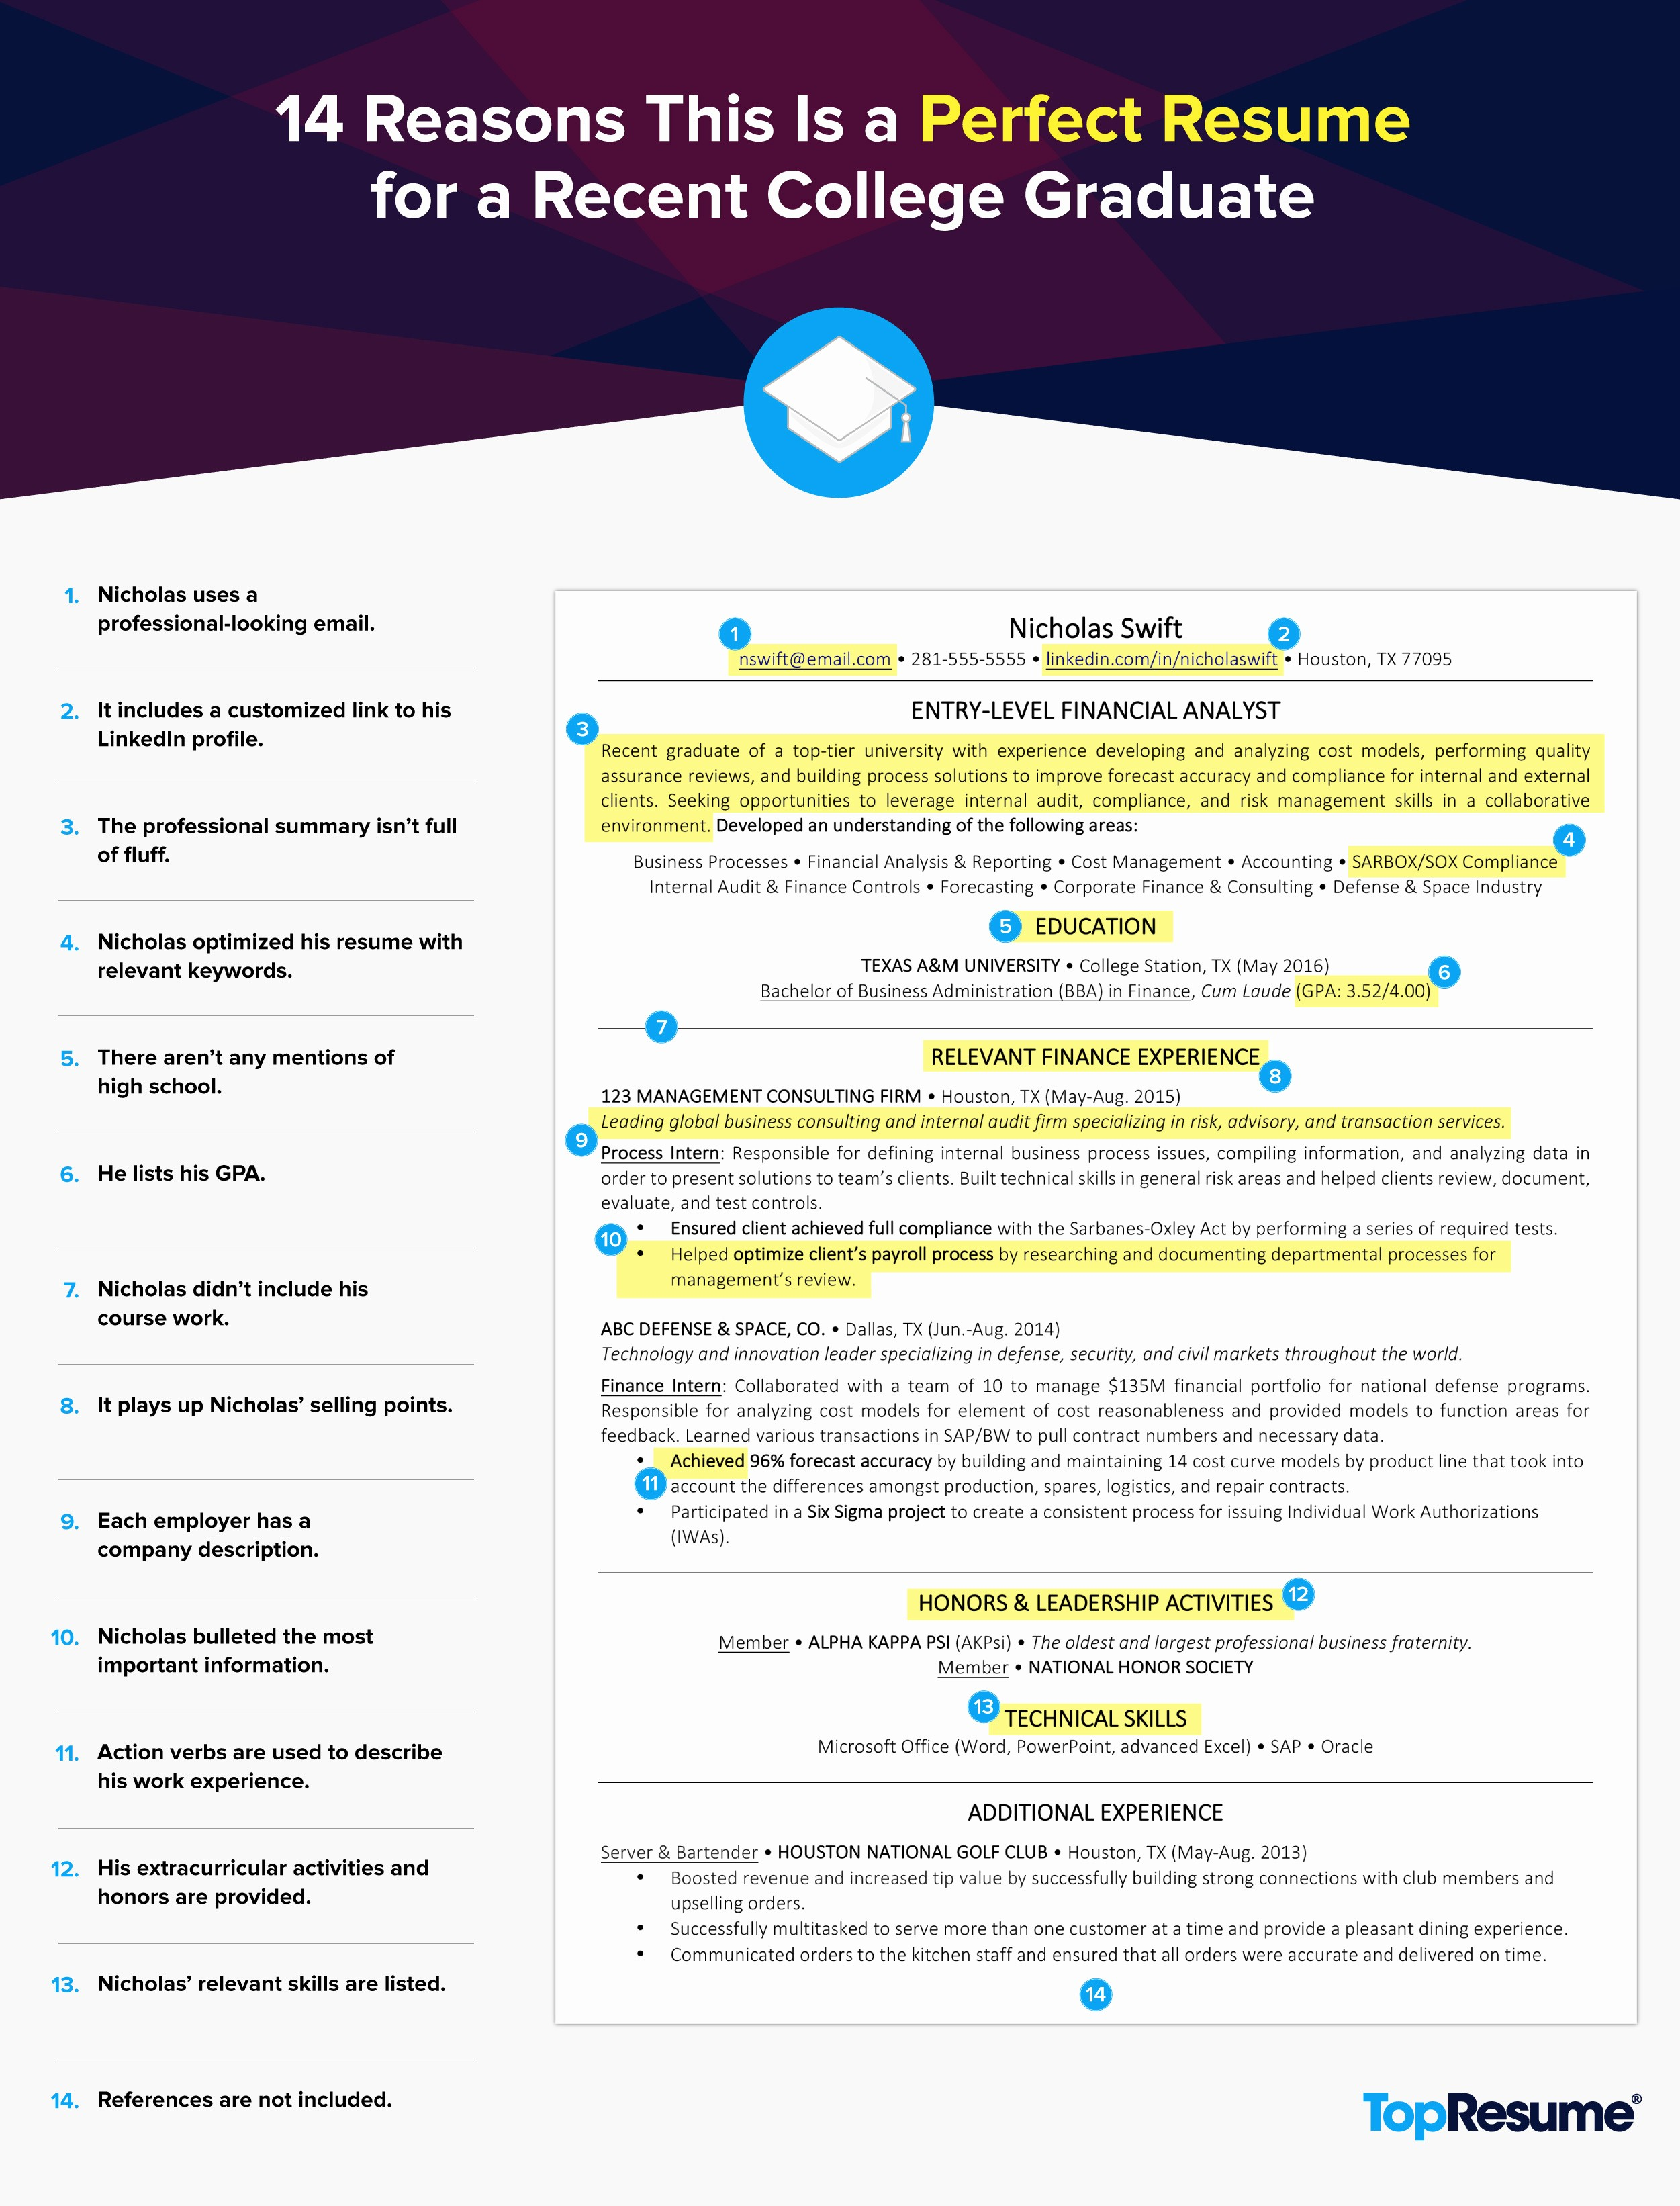 Resume for New College Graduate Awesome 14 Reasons This is A Perfect Recent College Graduate